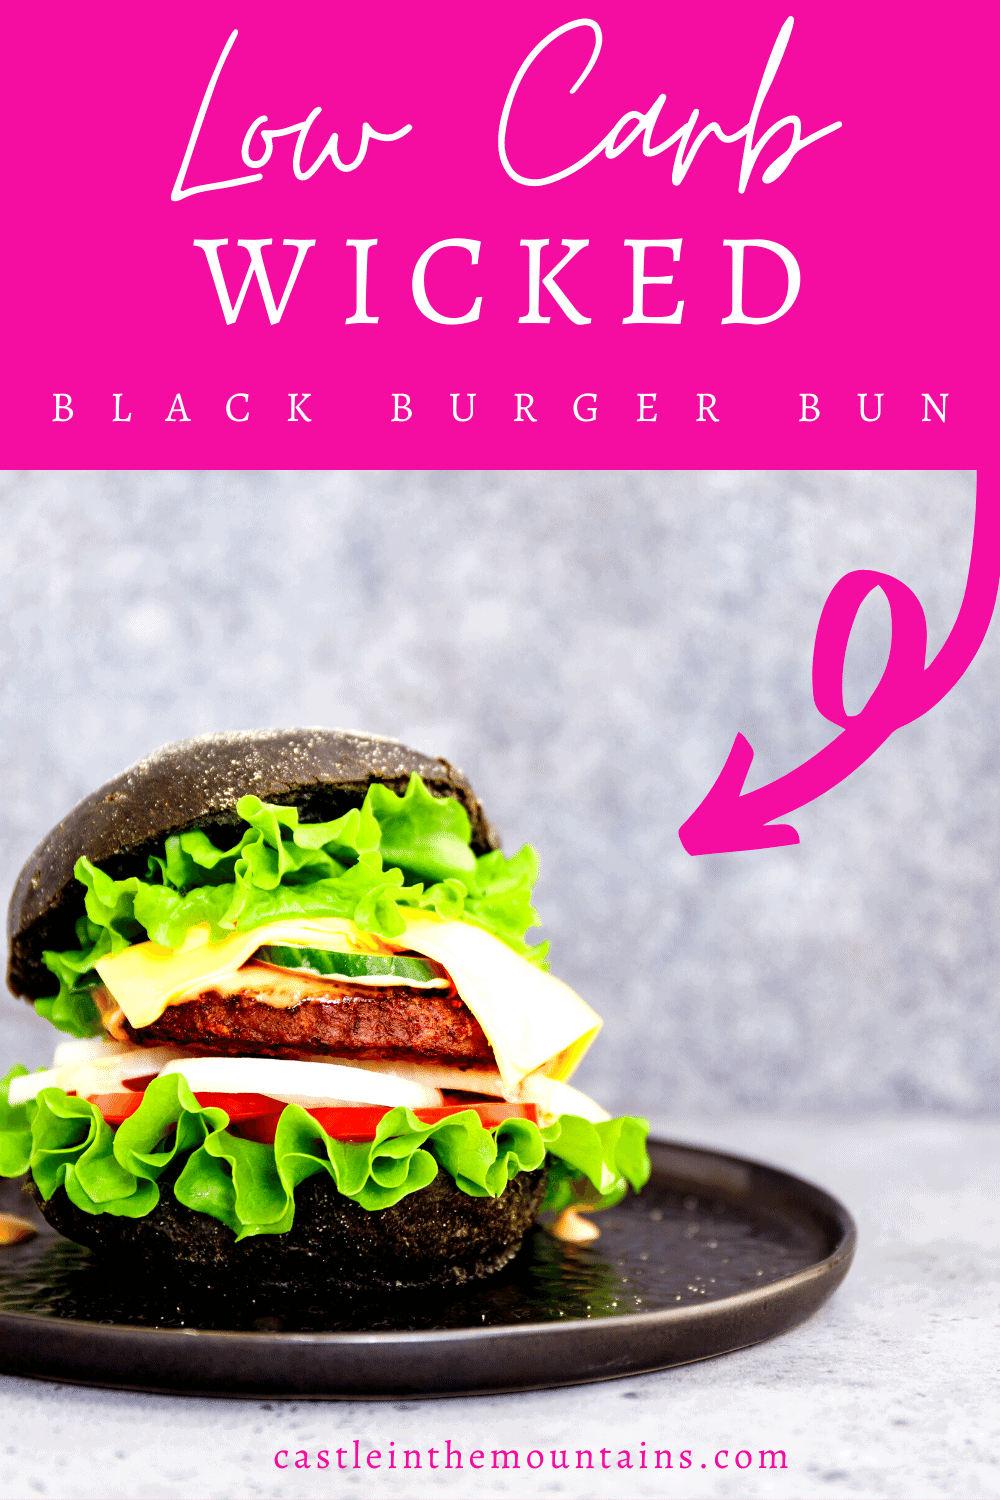 Wicked Black Burger Buns - How to make Sophisticated Buns.